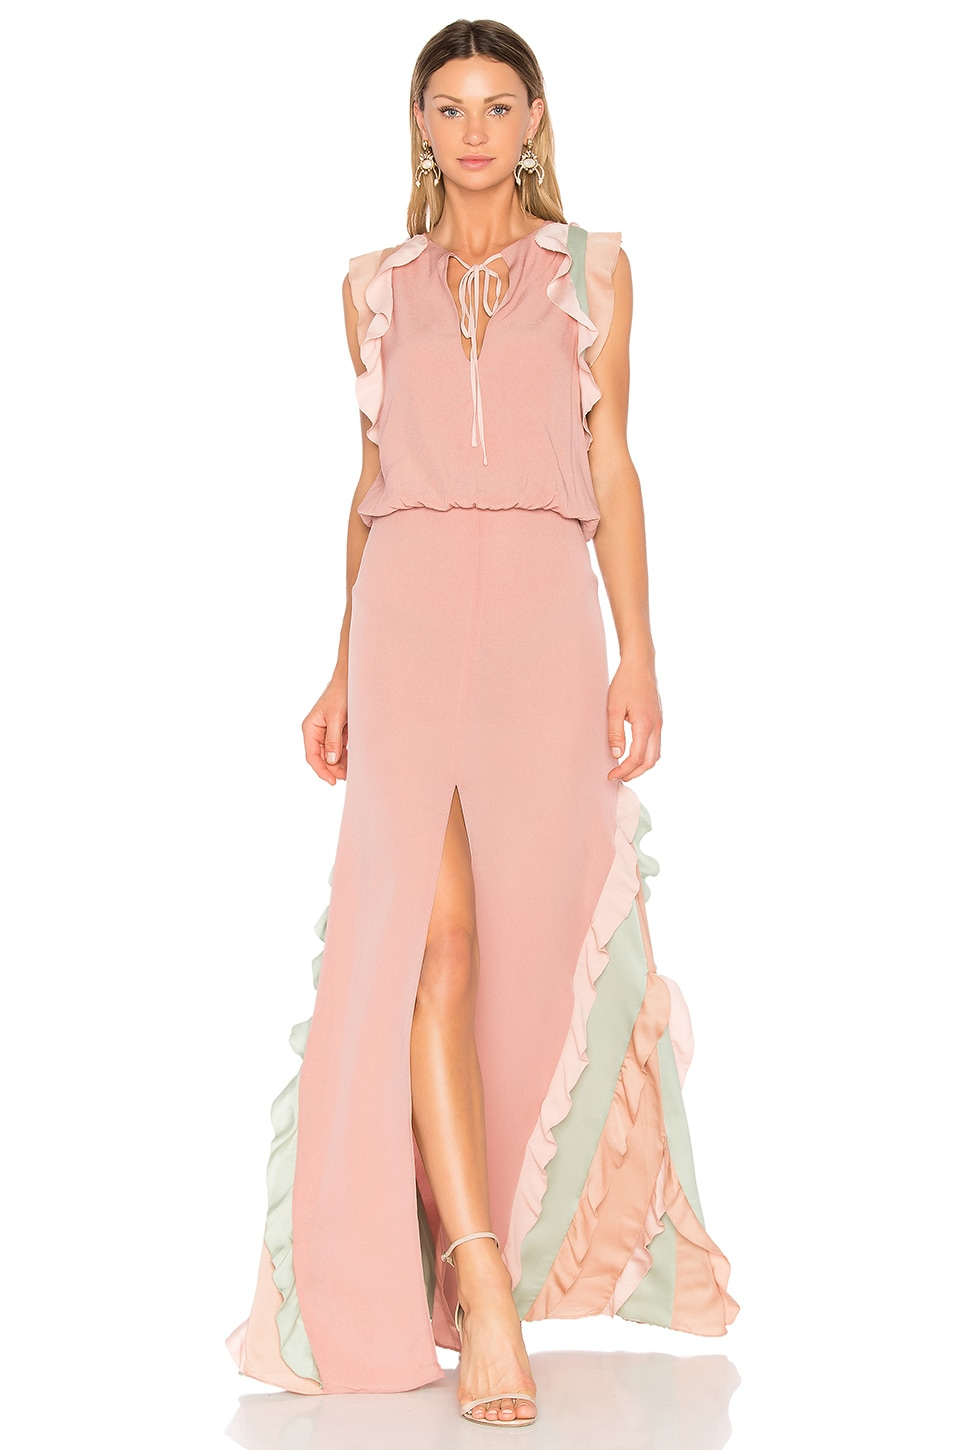 Alexis Battista Gown in Pink